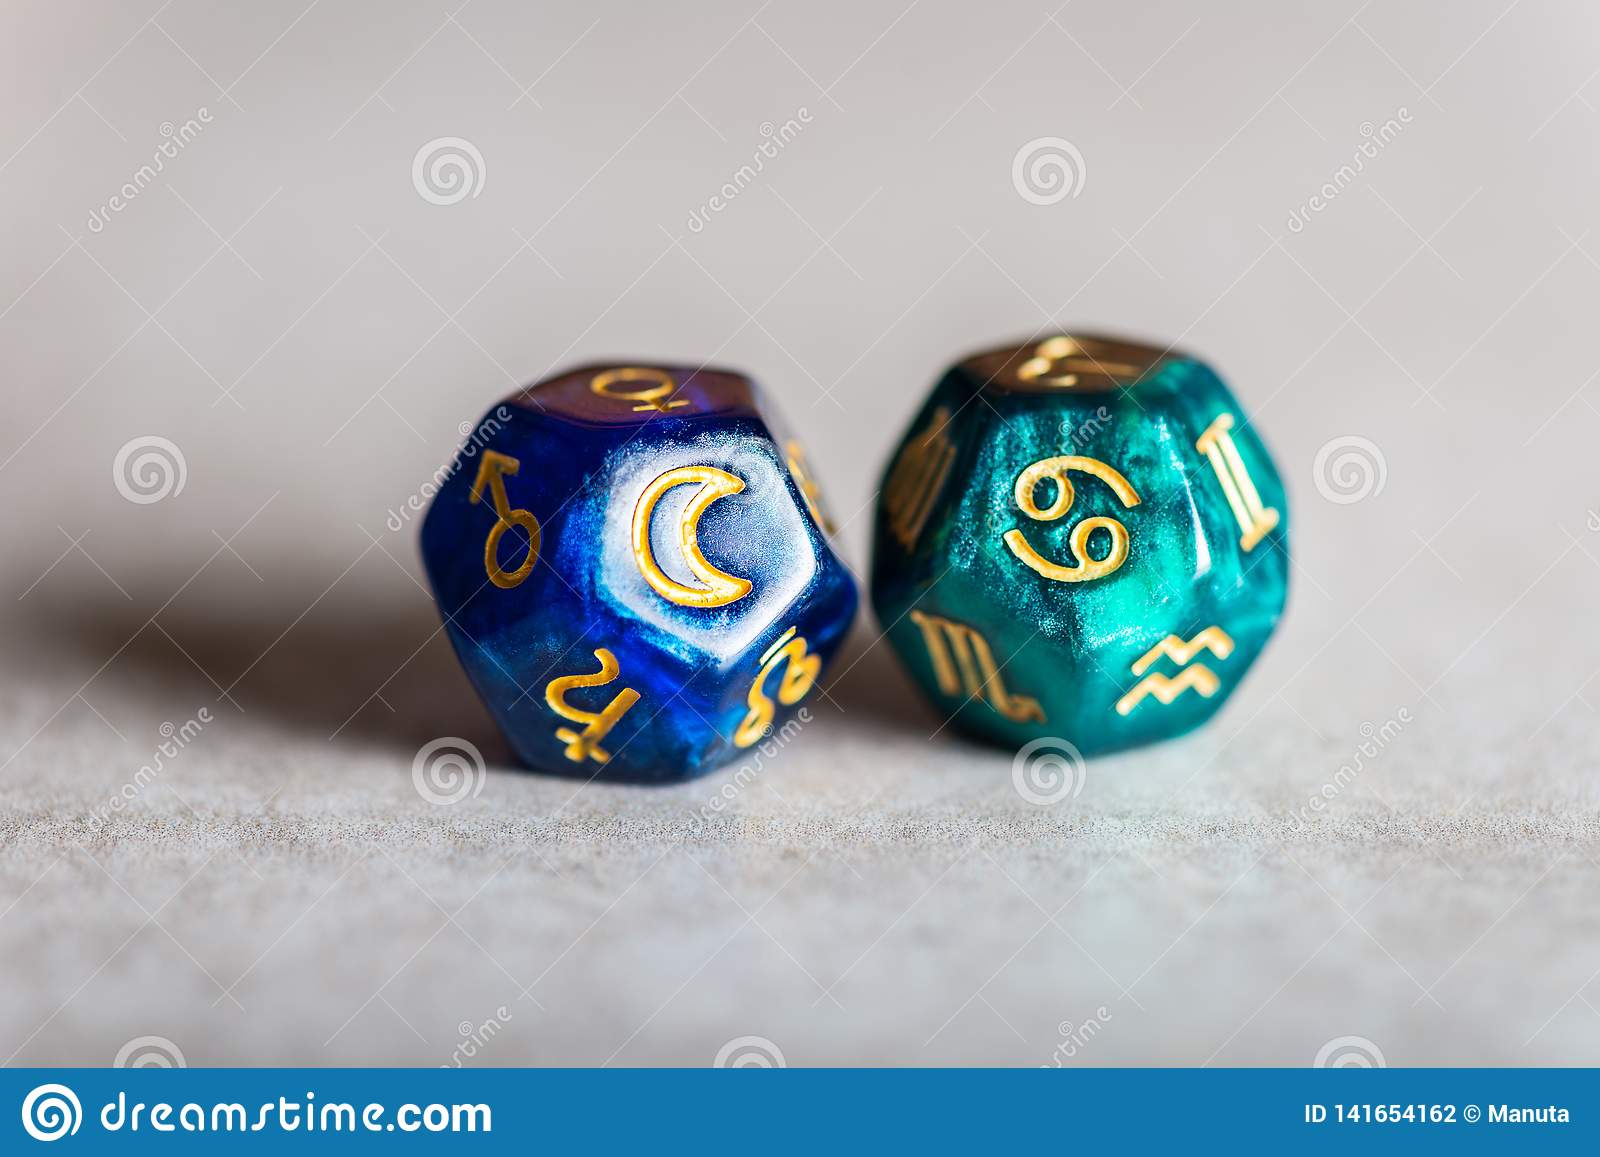 Astrology Dice with zodiac symbol of Cancer and its ruling celestial body the Moon